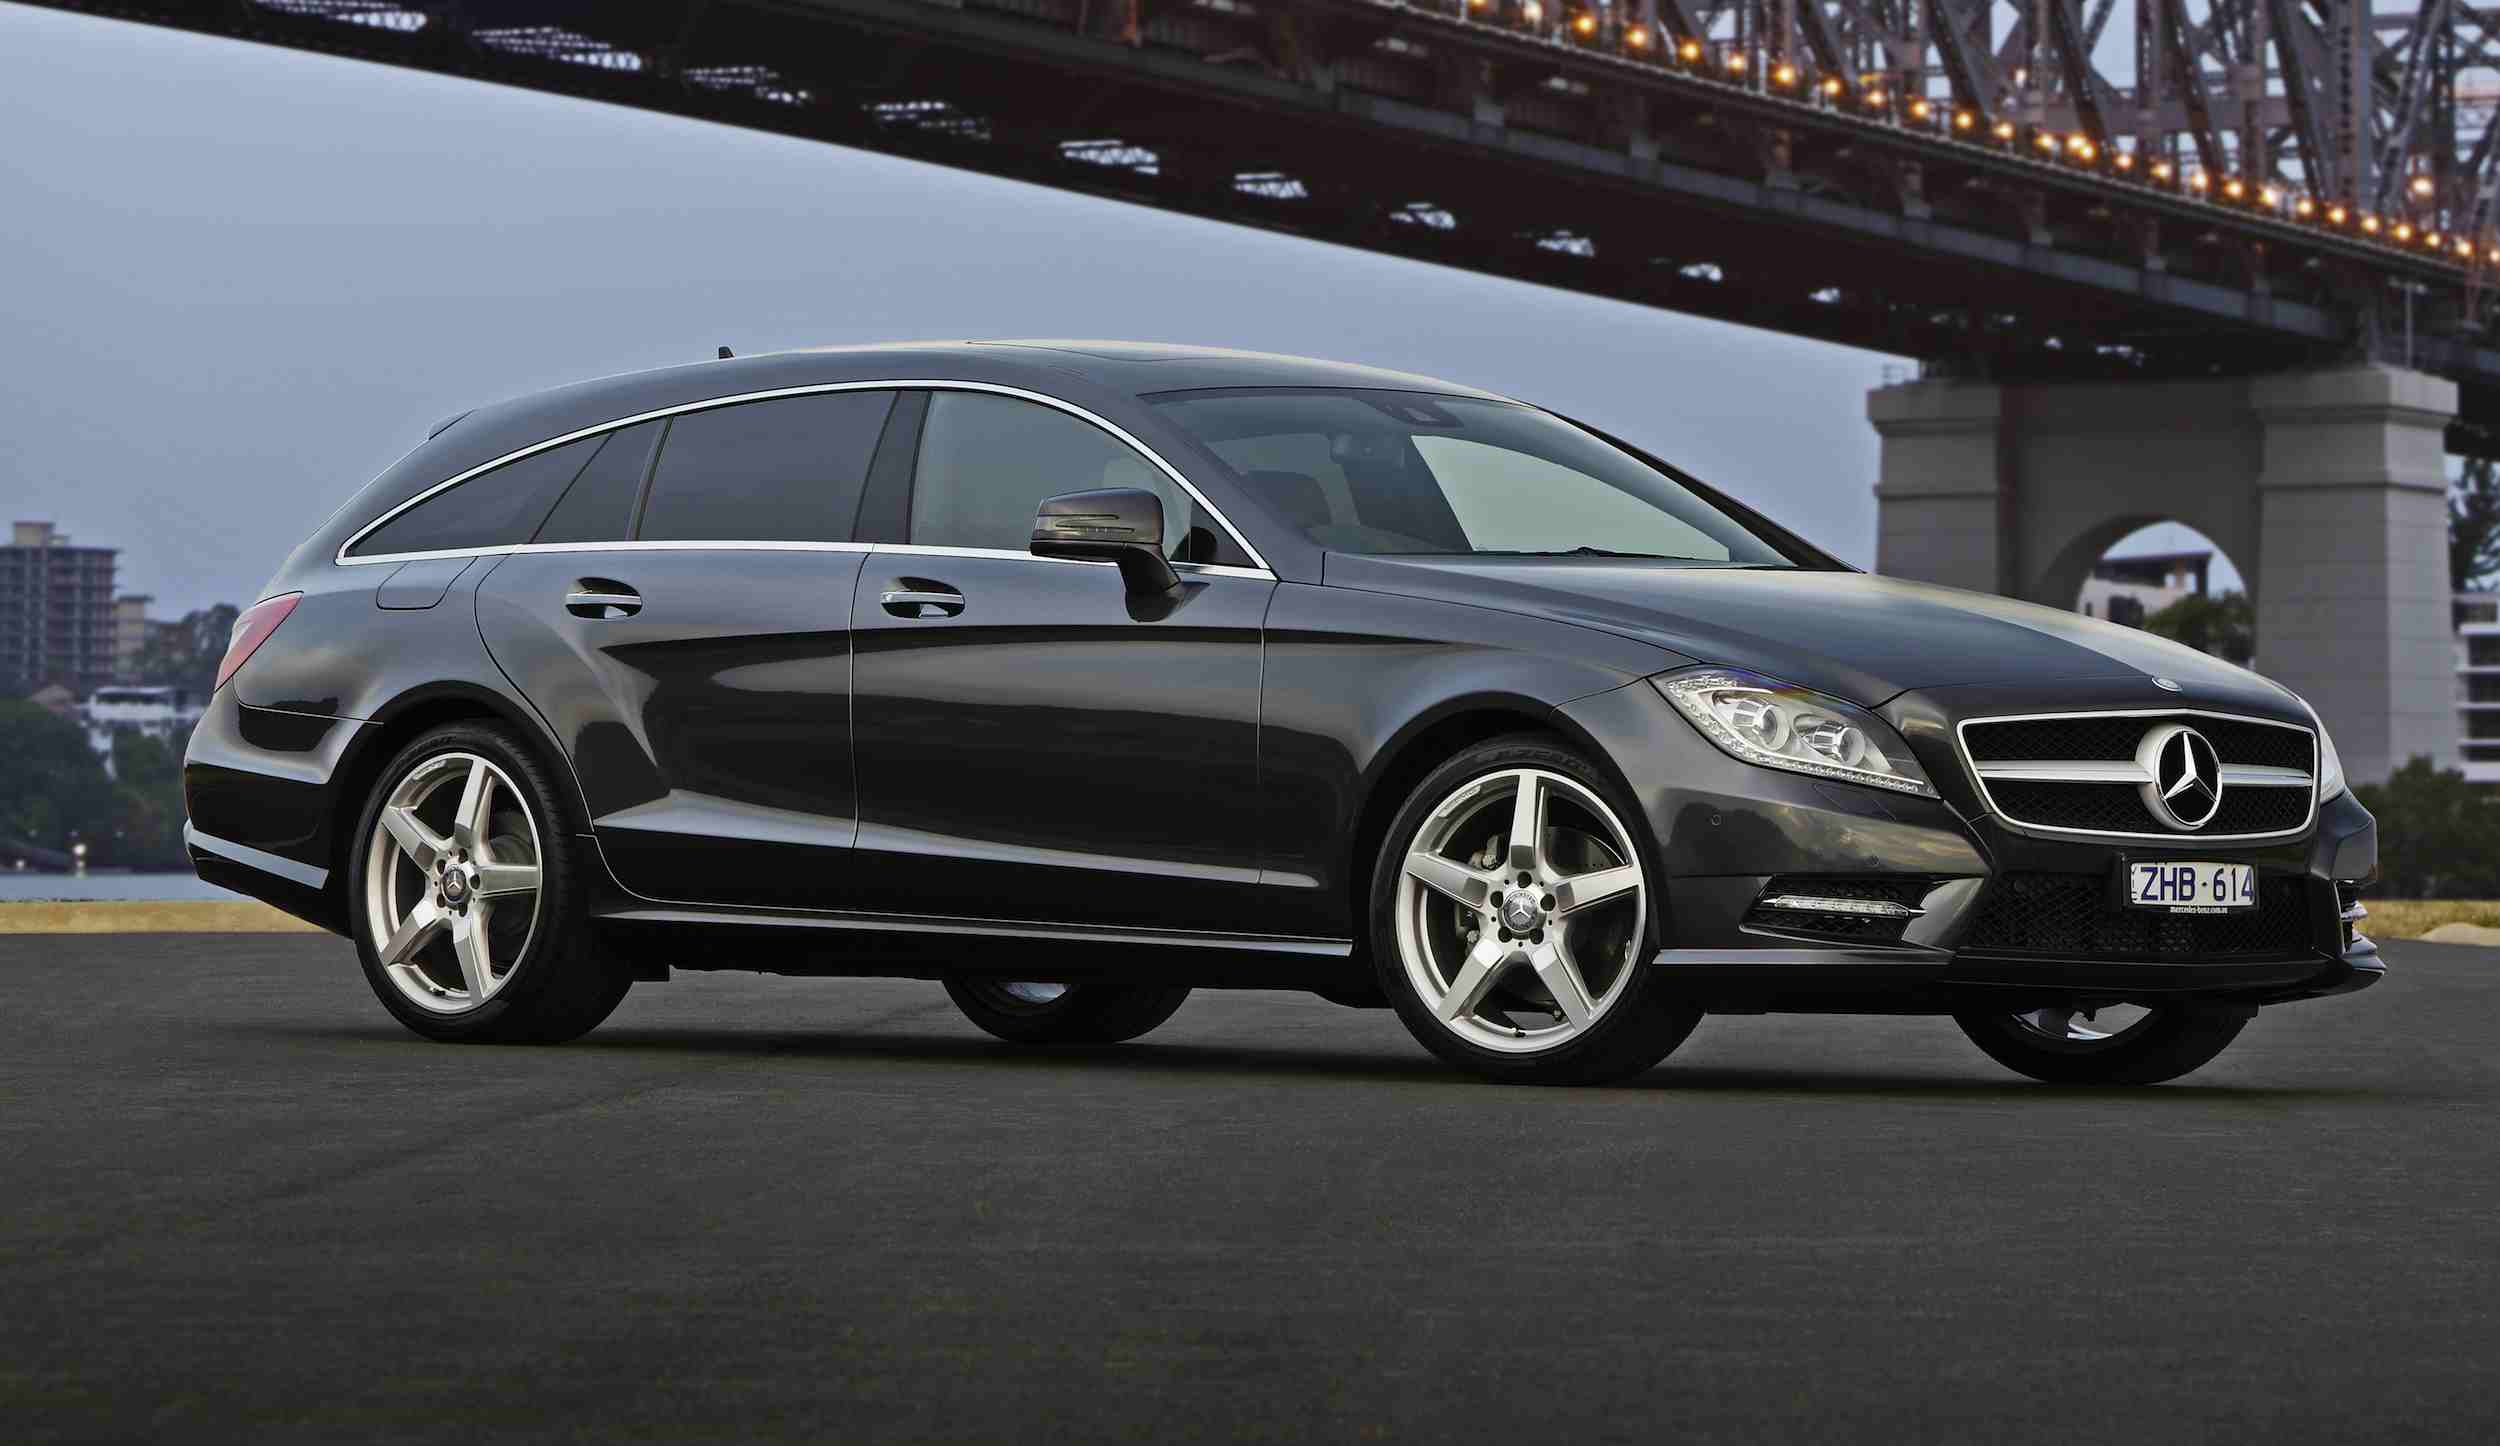 Mercedes Gl E >> No More Shooting Brake for Next-Gen Mercedes-Benz CLS